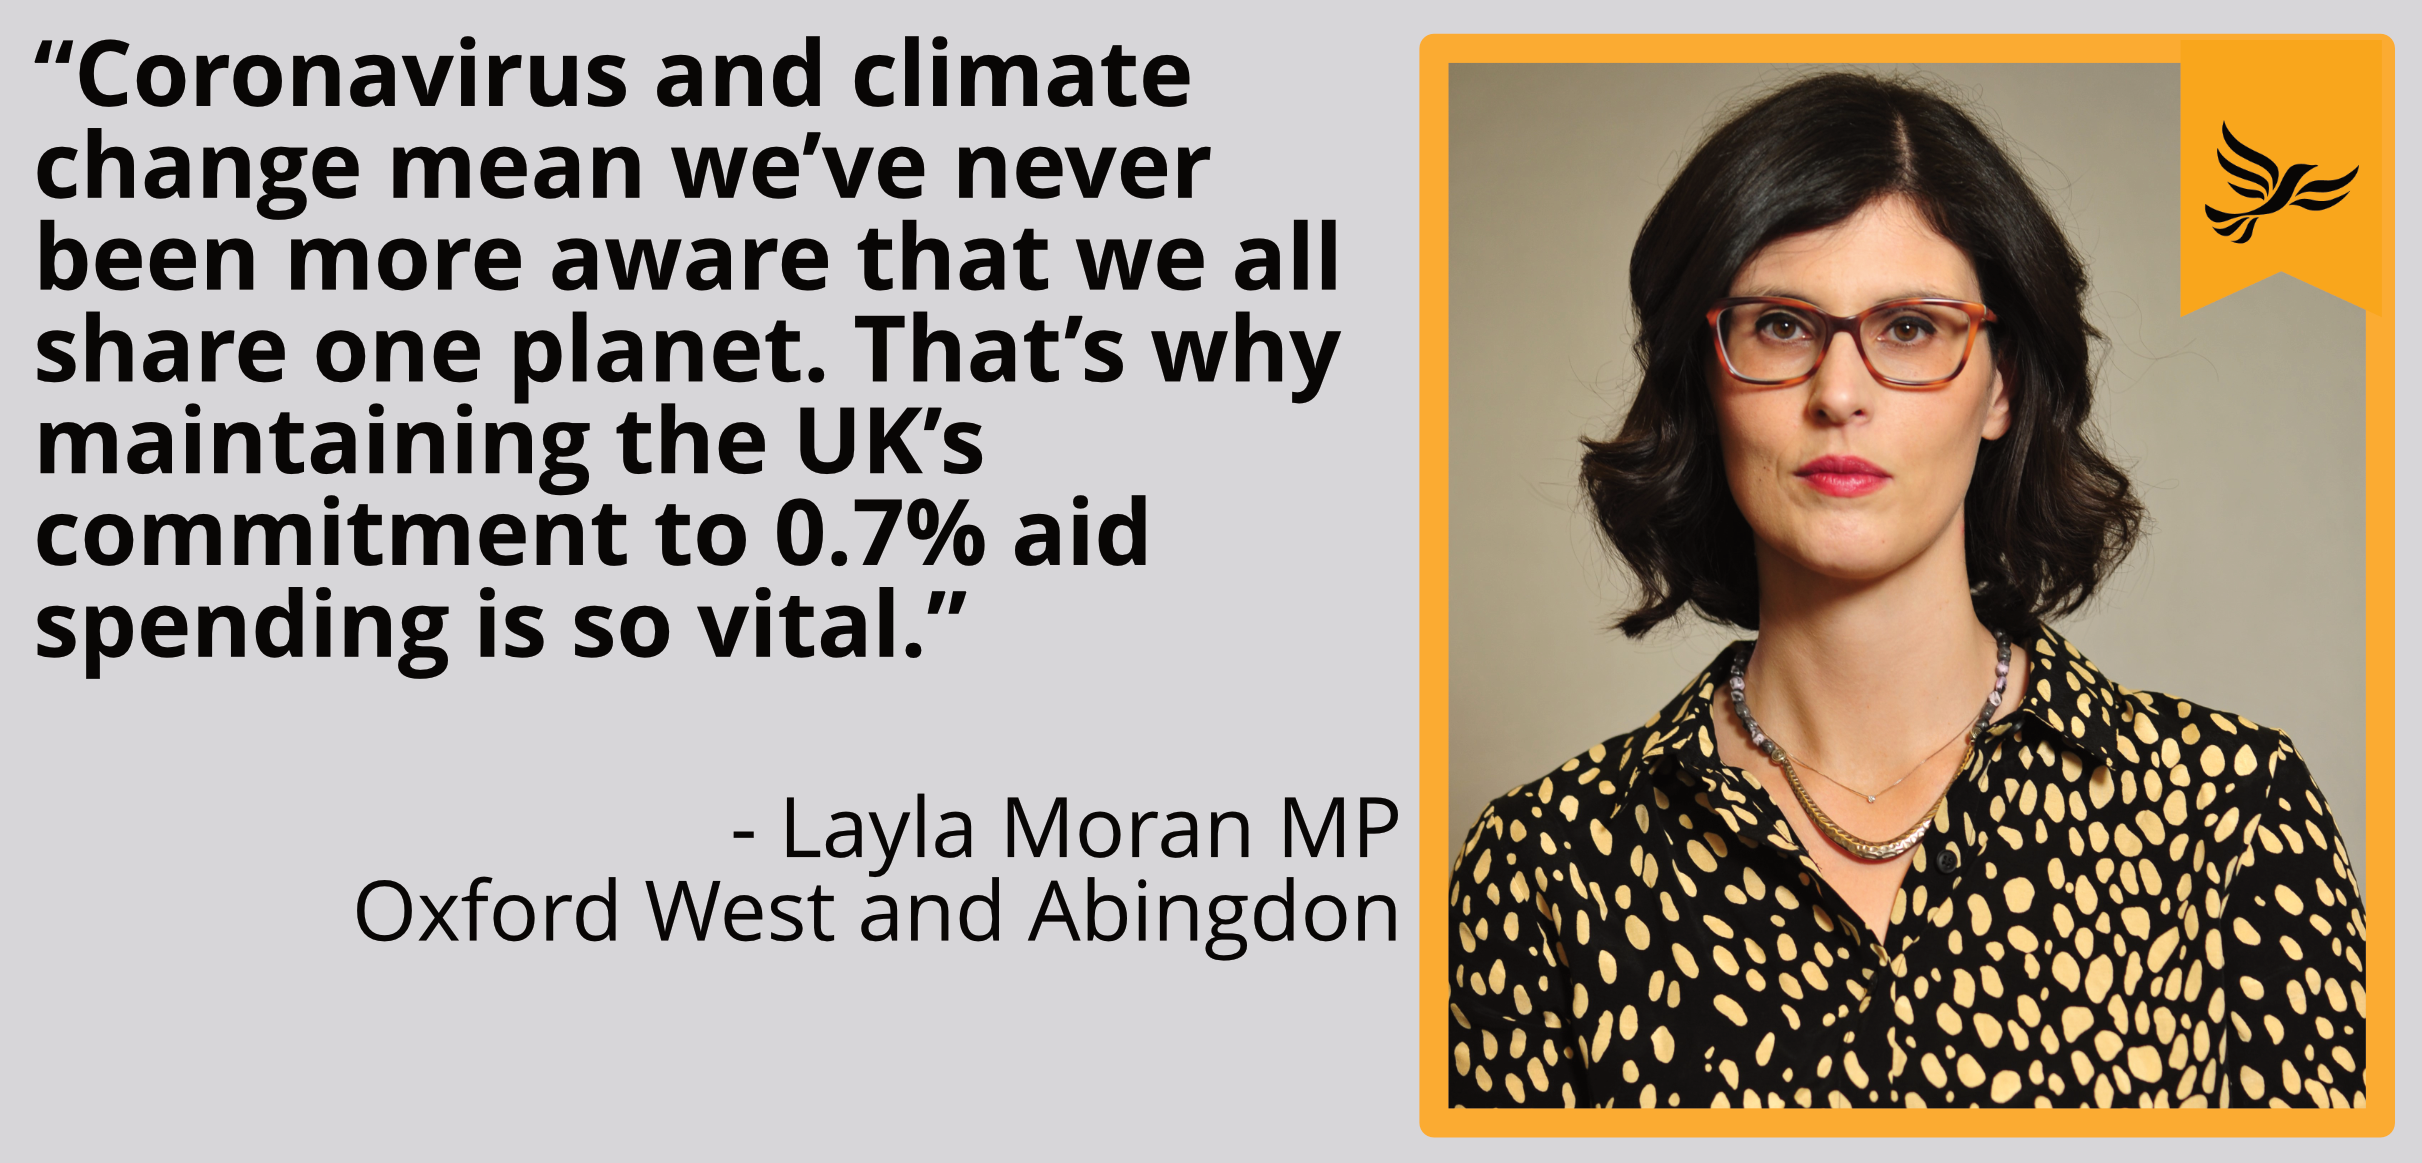 Coronavirus and climate change mean we've never been more aware that we all share one planet. That's why maintaining the UK's commitment to 0.7% aid spending is so vital